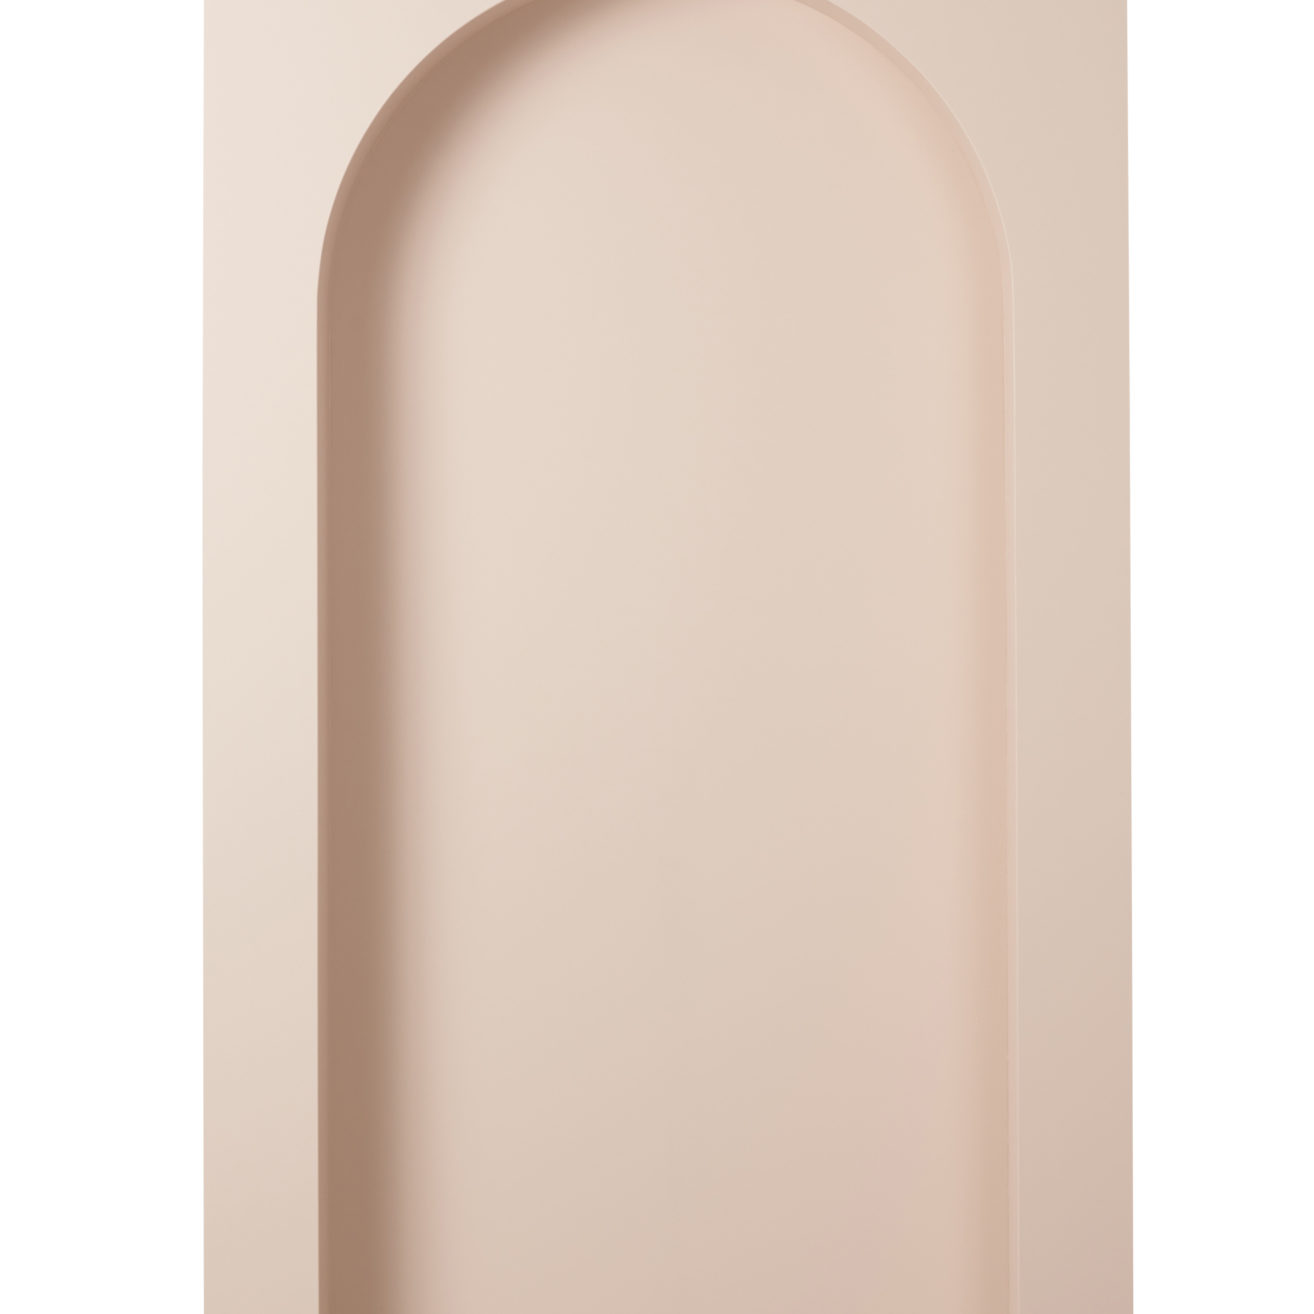 Arch Wall Panel - 1.2m W x 2.4m H - Event Artillery